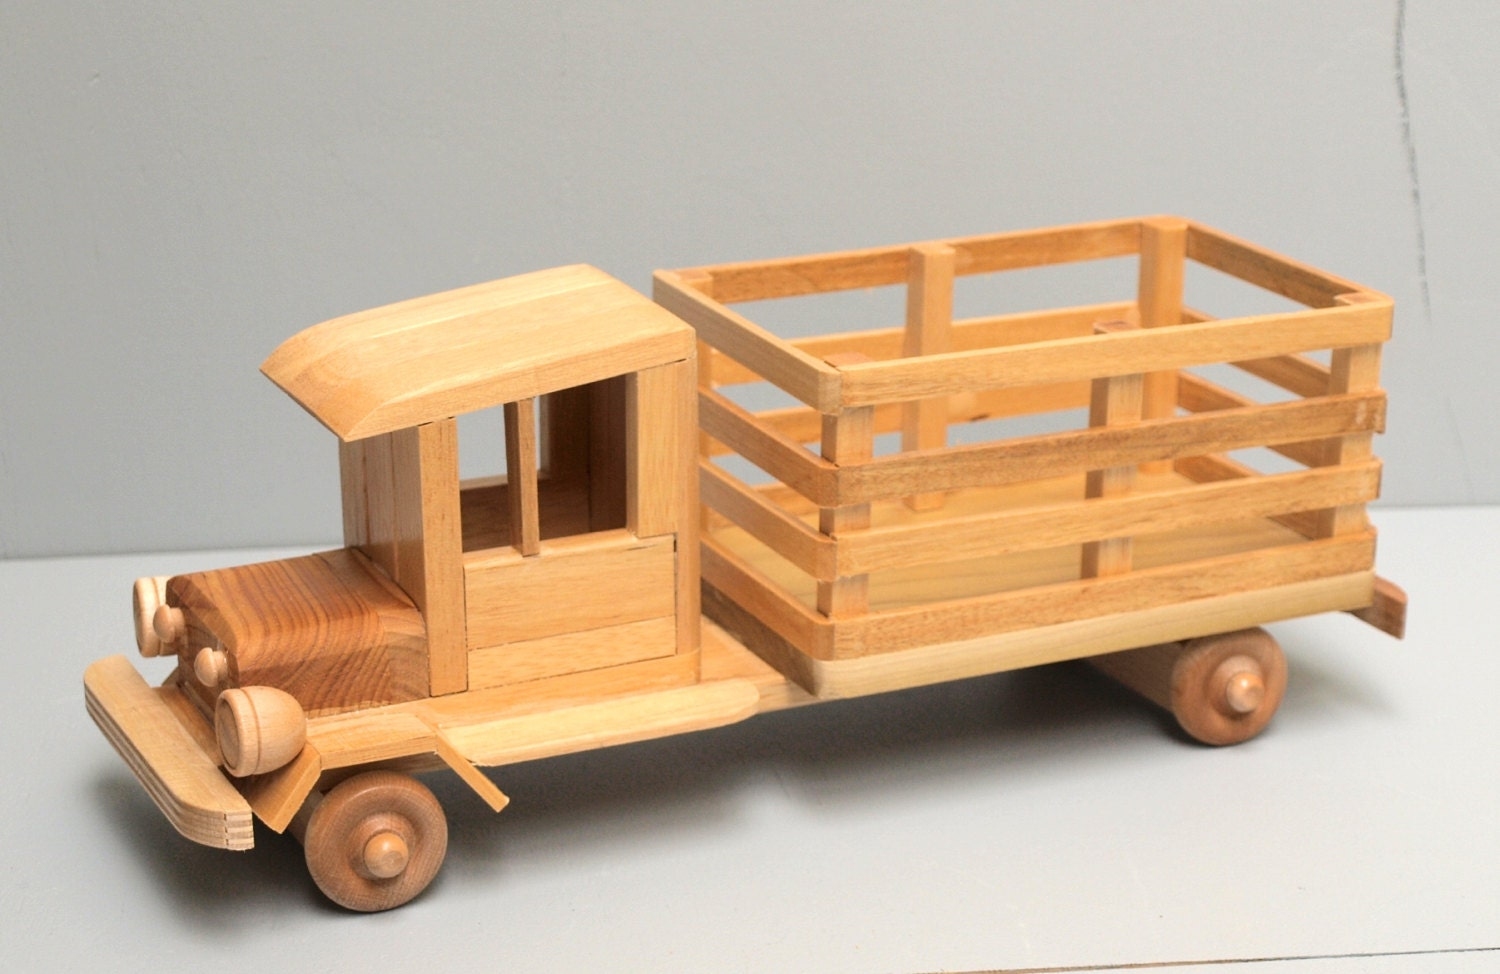 WOOD FARM Truck Eco-friendly Wooden Toy Car for Kids Organic